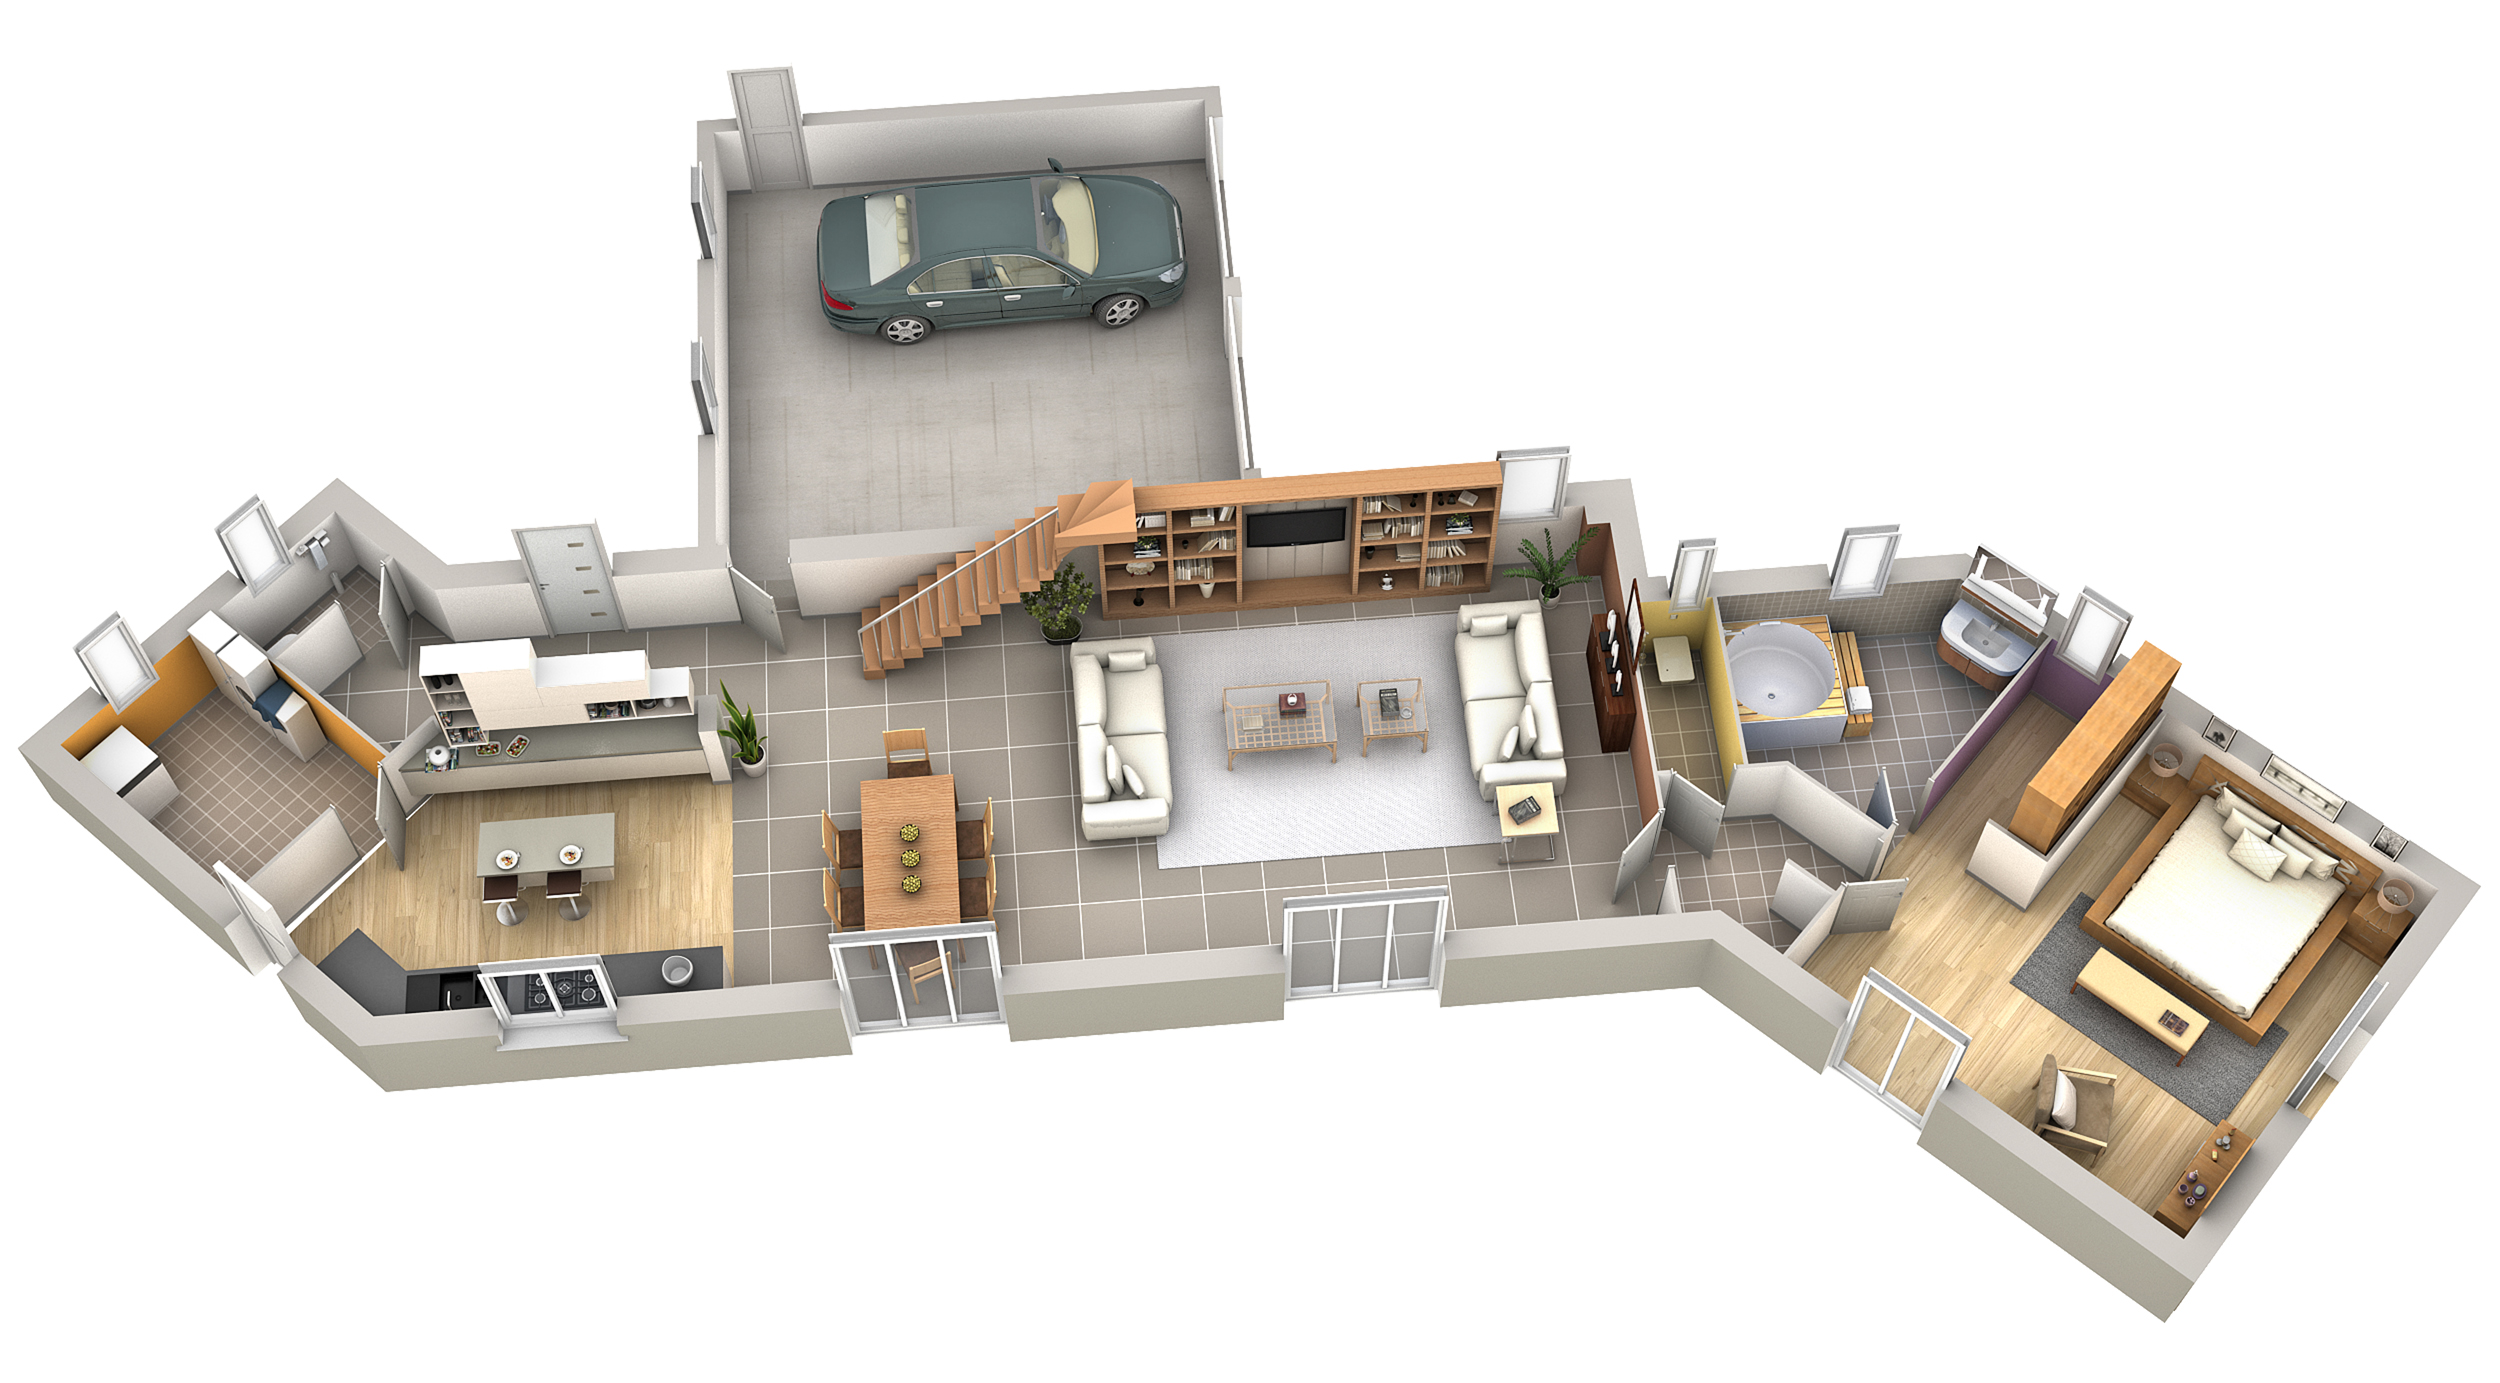 Plan maison contemporaine cassis genoise villas club for Amenagement interieur de maison